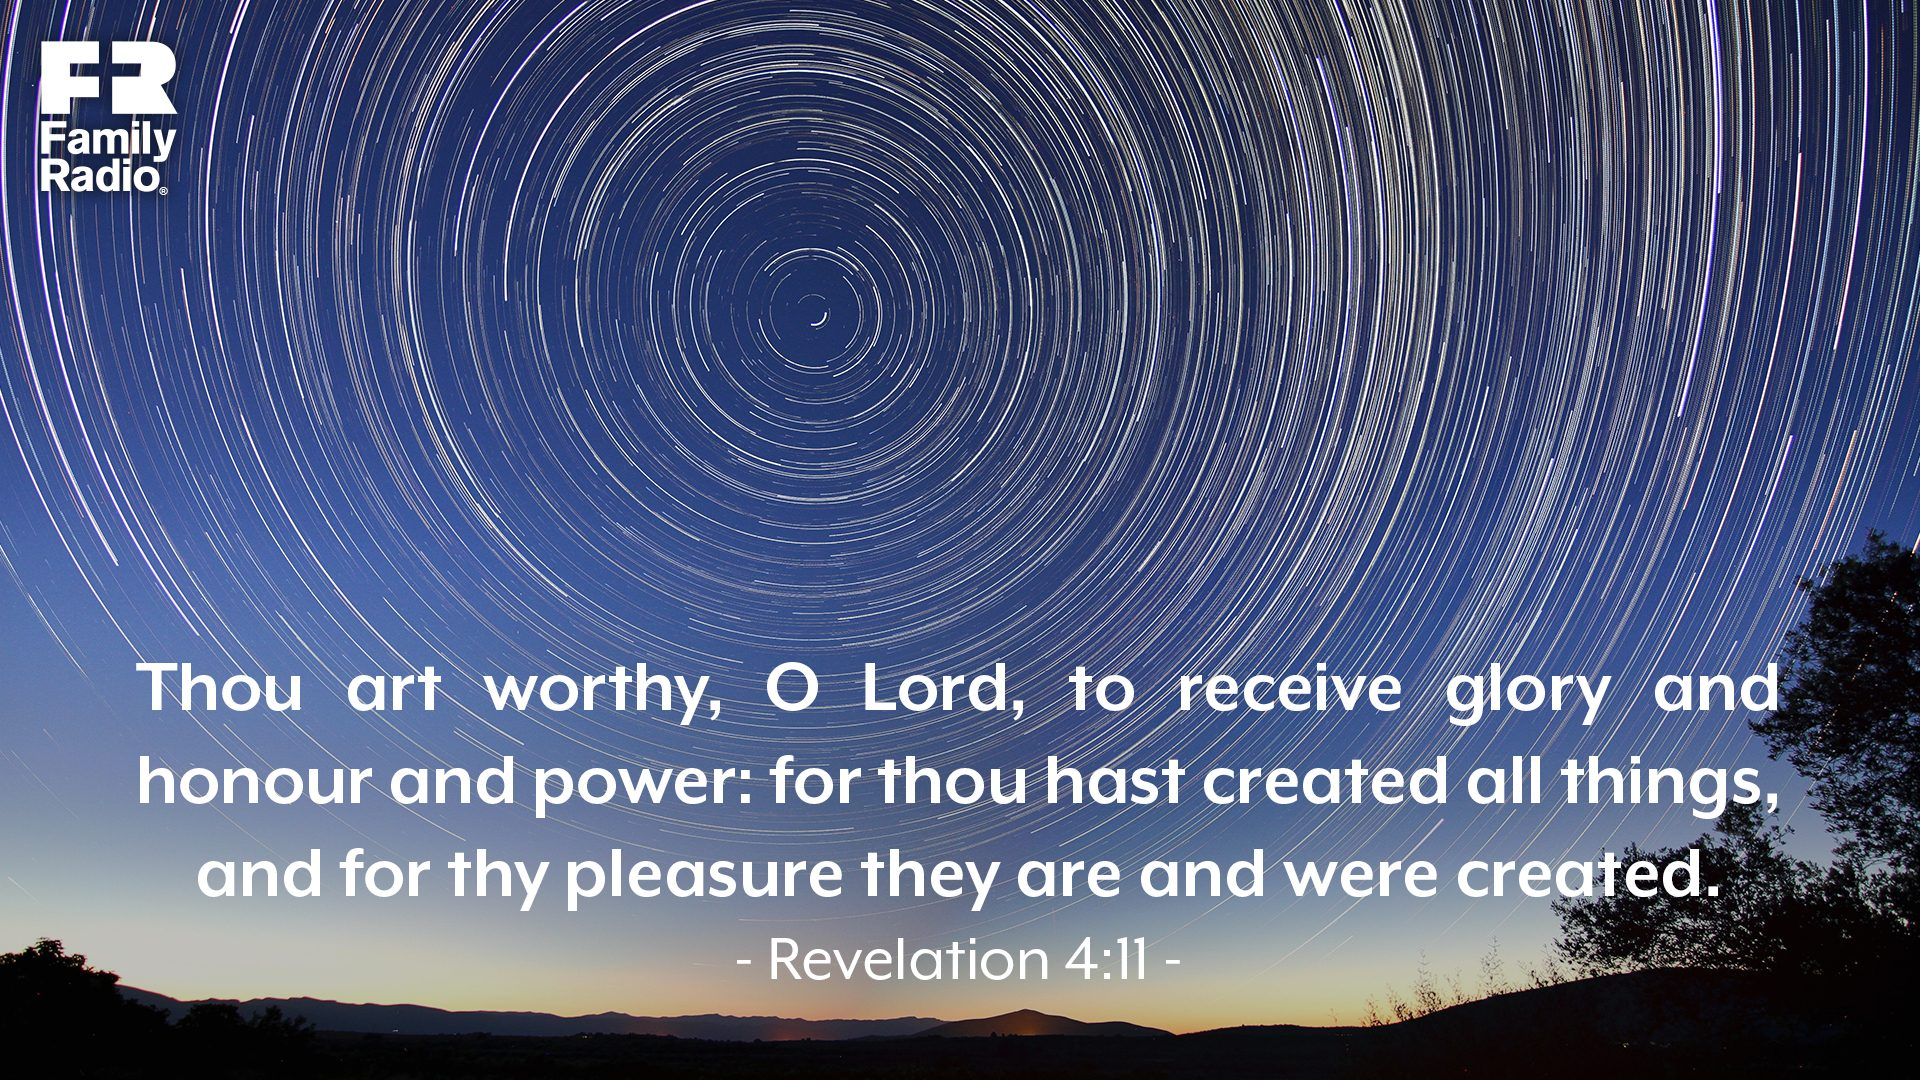 """Thou art worthy, O Lord, to receive glory and honour and power: for thou hast created all things, and for thy pleasure they are and were created."""